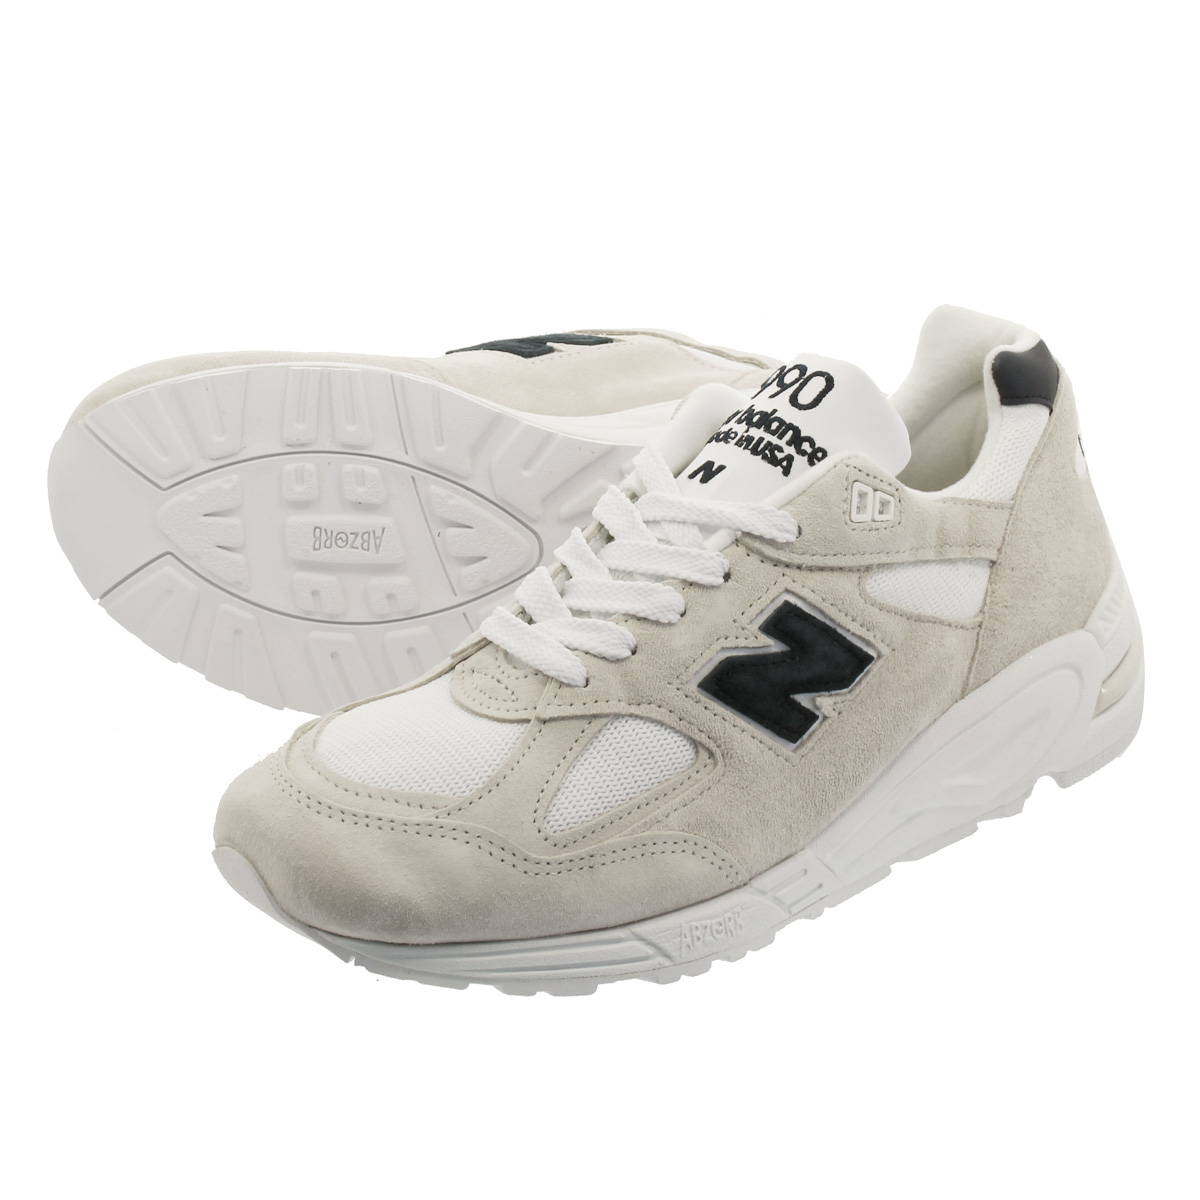 hot sale online d6a18 e3e51 NEW BALANCE M990WE2 New Balance M 990 WE2 WHITE/GREY/NAVY